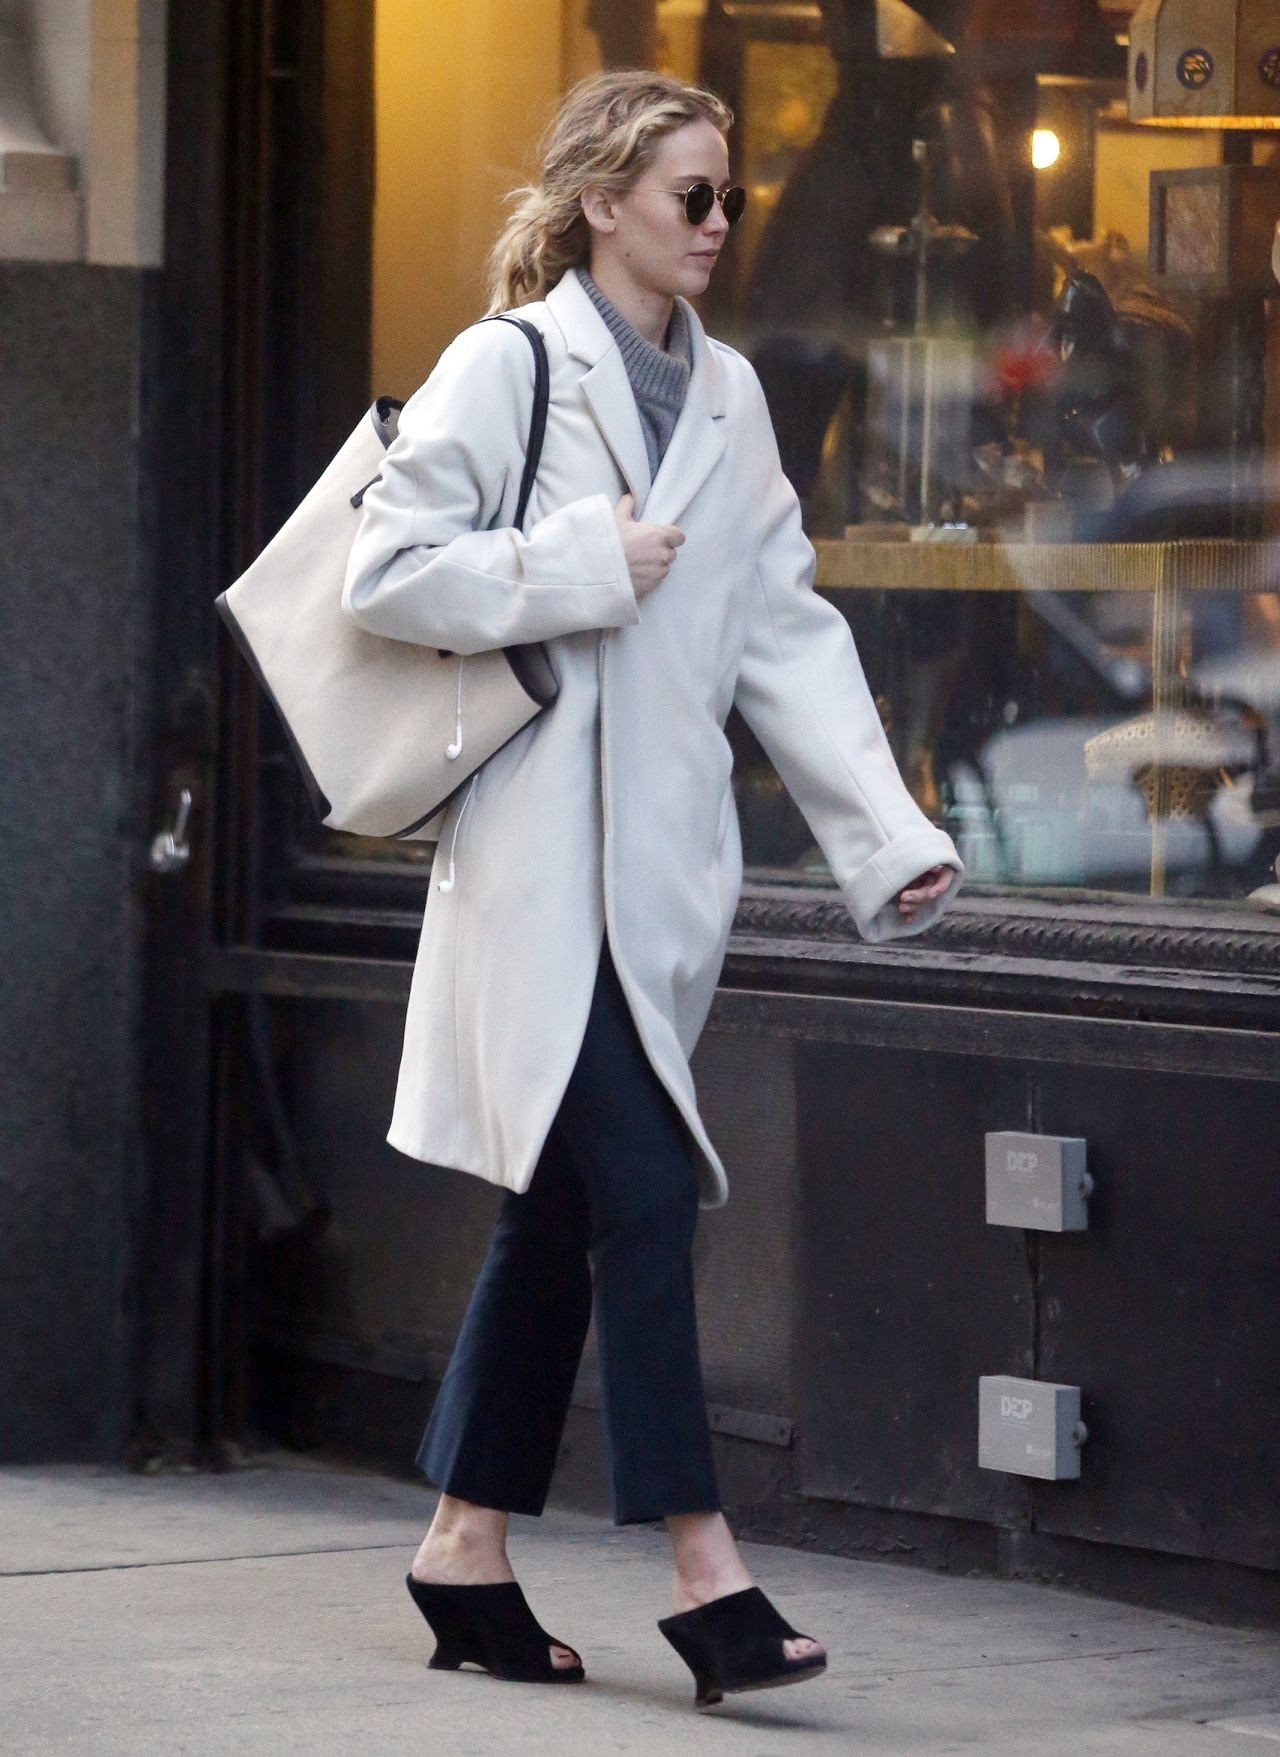 Jennifer Lawrence Out In New York City 03 14 2019